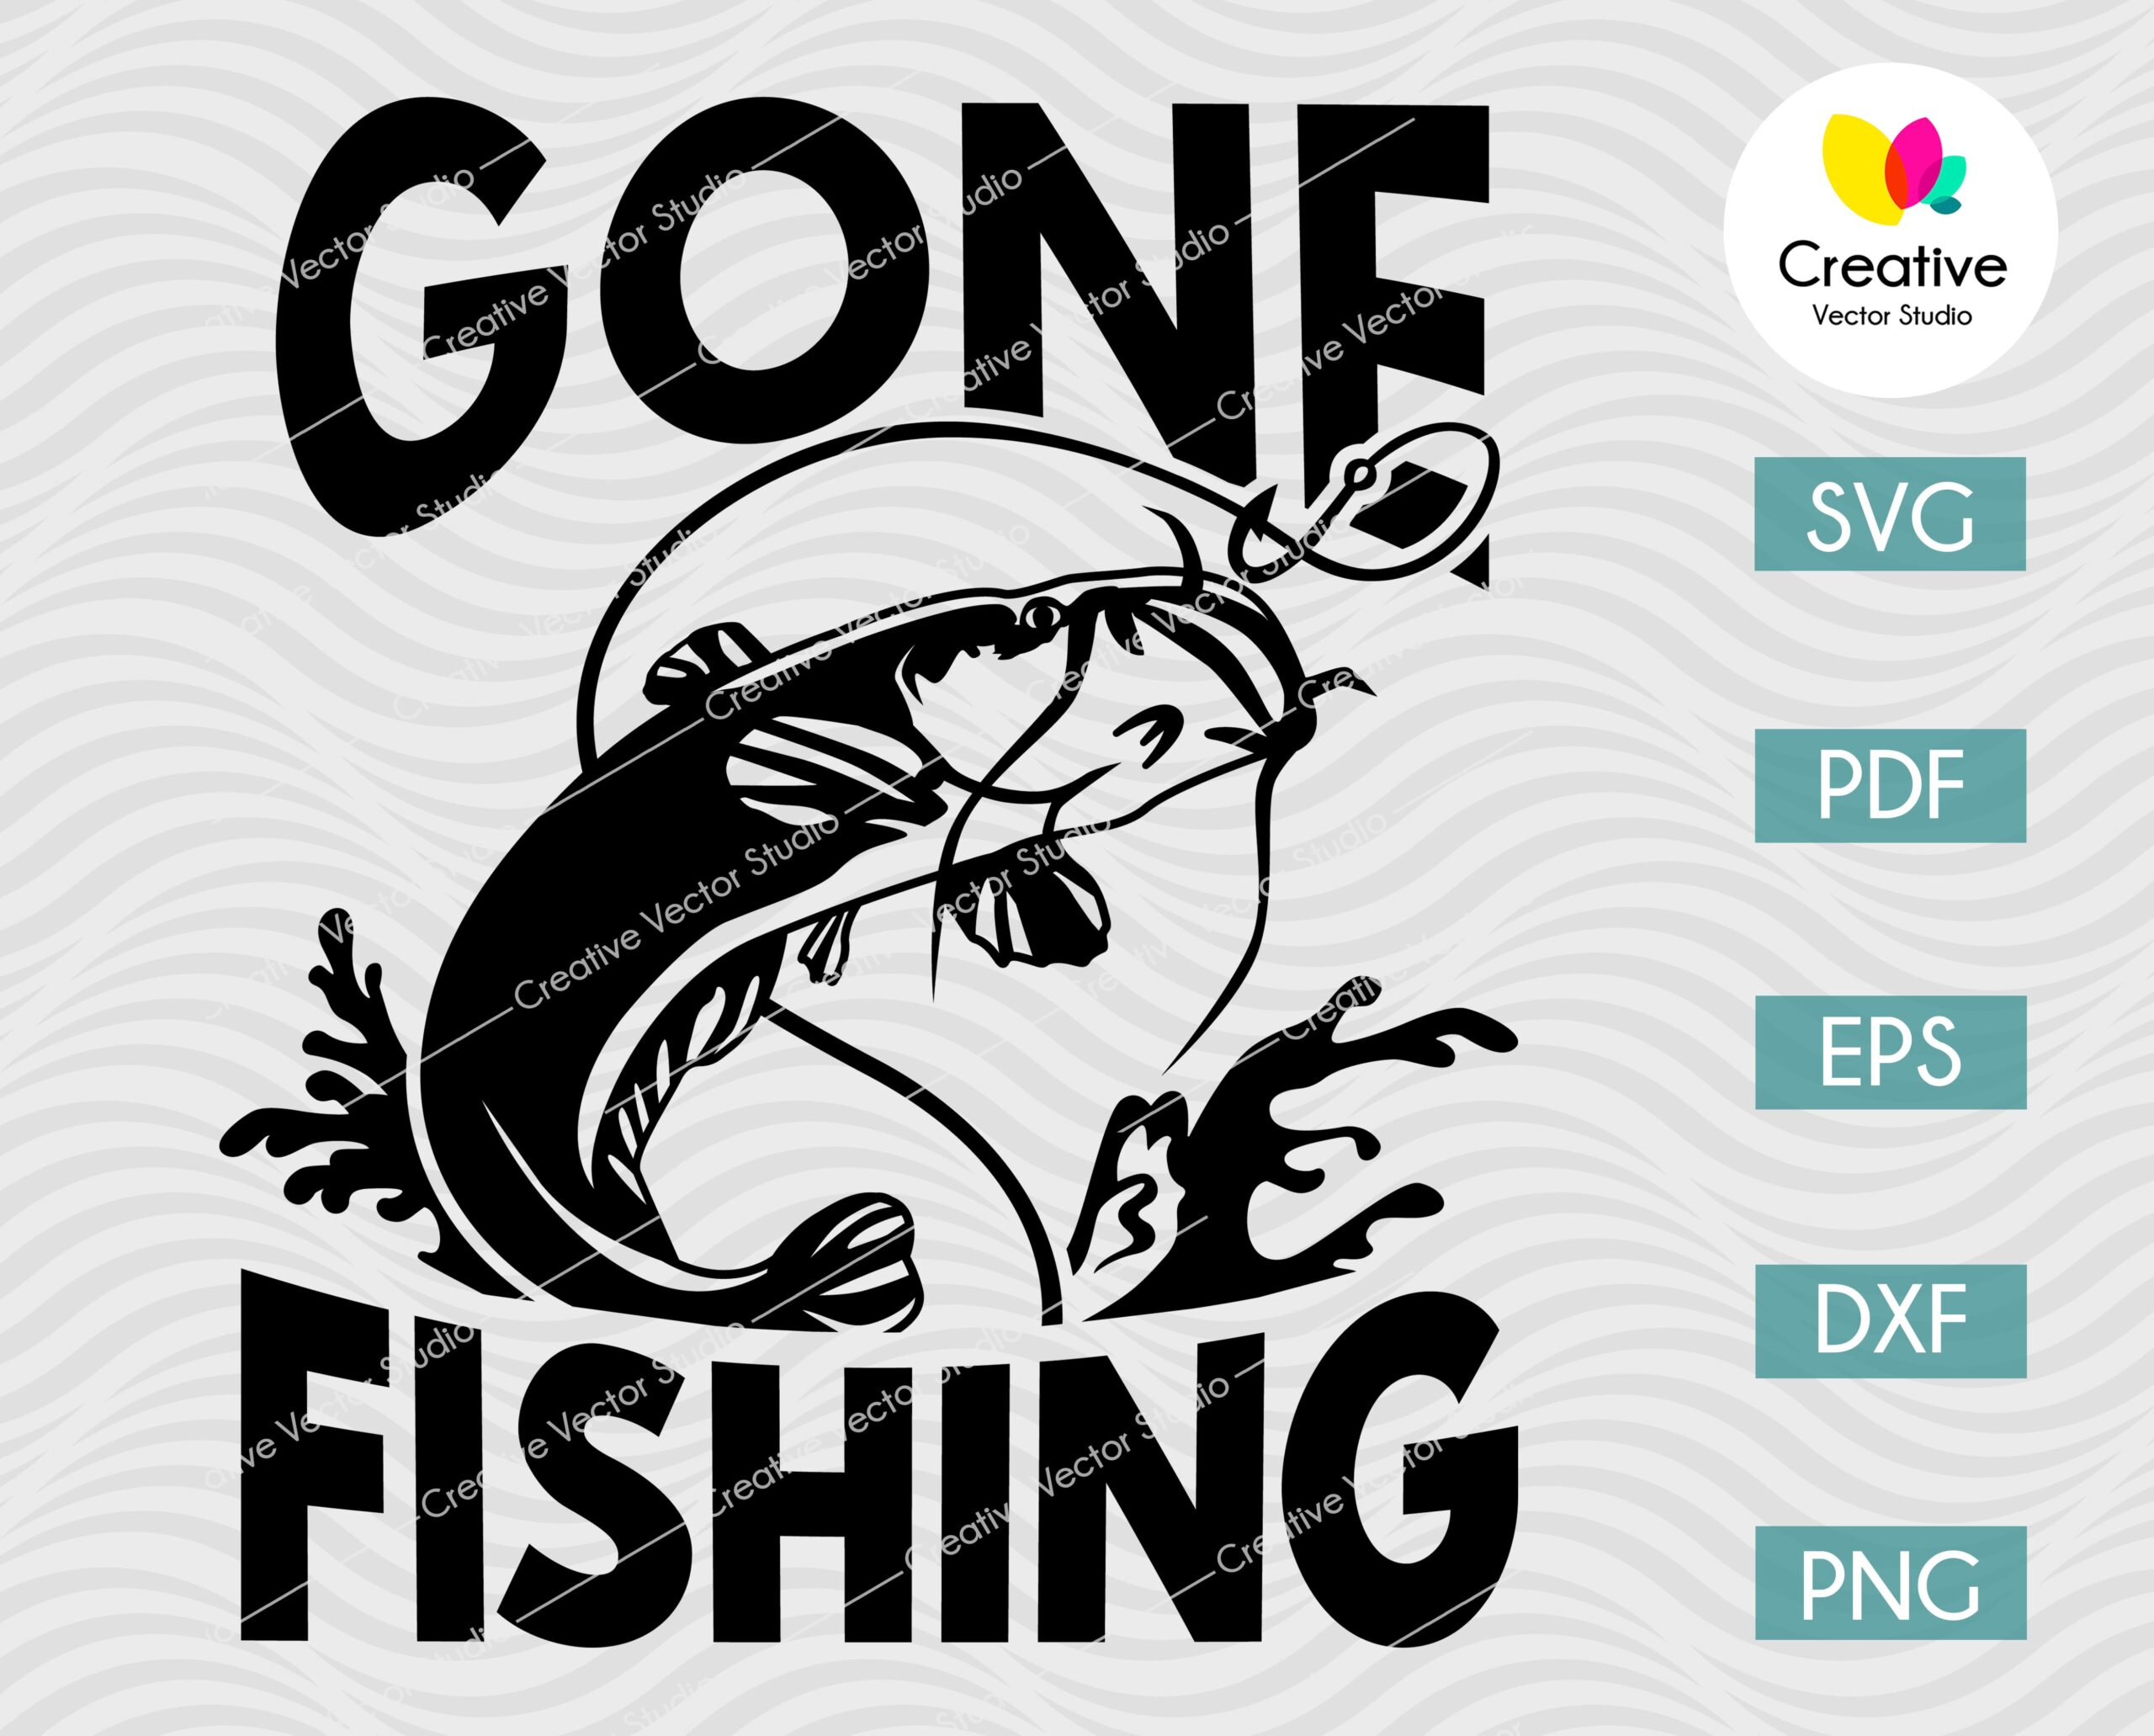 Download Gone Fishing Catfish Svg Png Dxf Cut File Creative Vector Studio